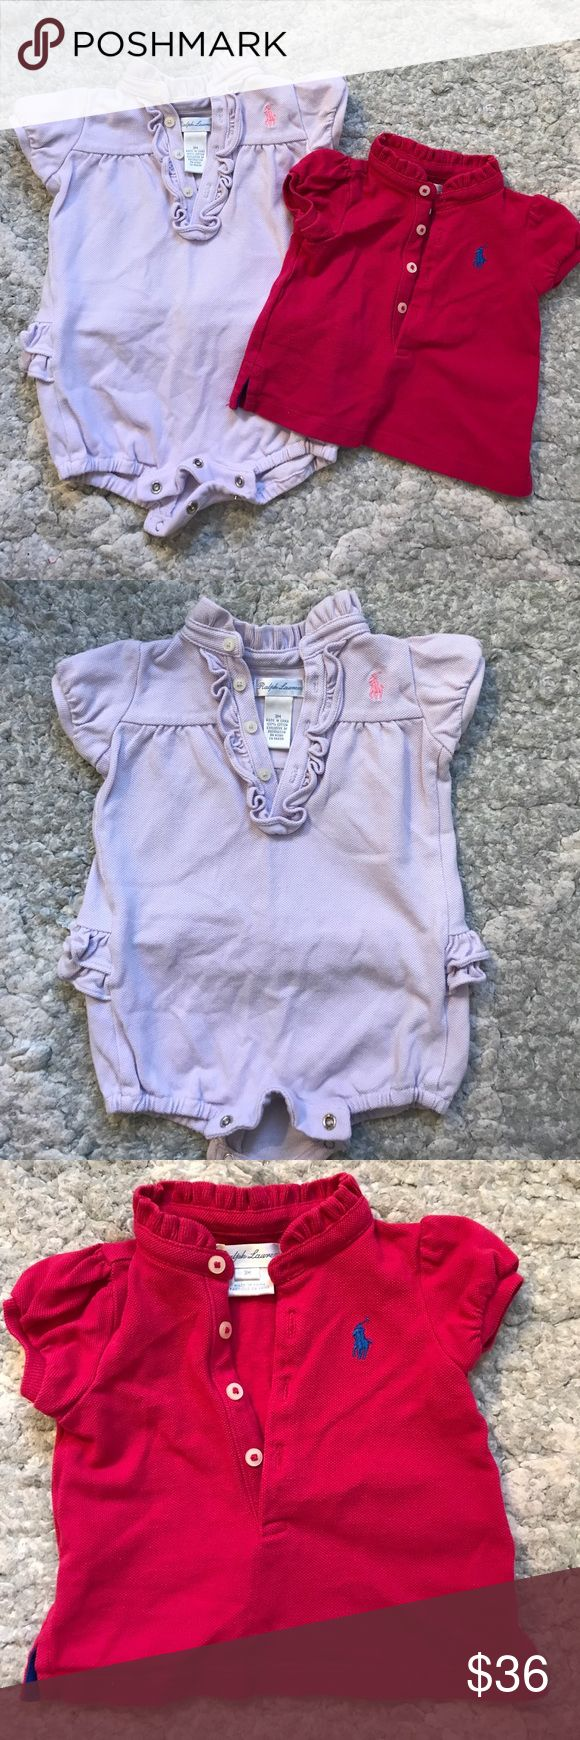 ralph lauren pink polo shirt & lavender romper. group of 2 baby girl clothing items. ralph lauren dark pink polo shirt with blue polo logo and ralph lauren lavender romper/onesie with pink polo logo.  both items have no holes, stains,rips. from a smoke free home. Ralph Lauren Shirts & Tops Polos